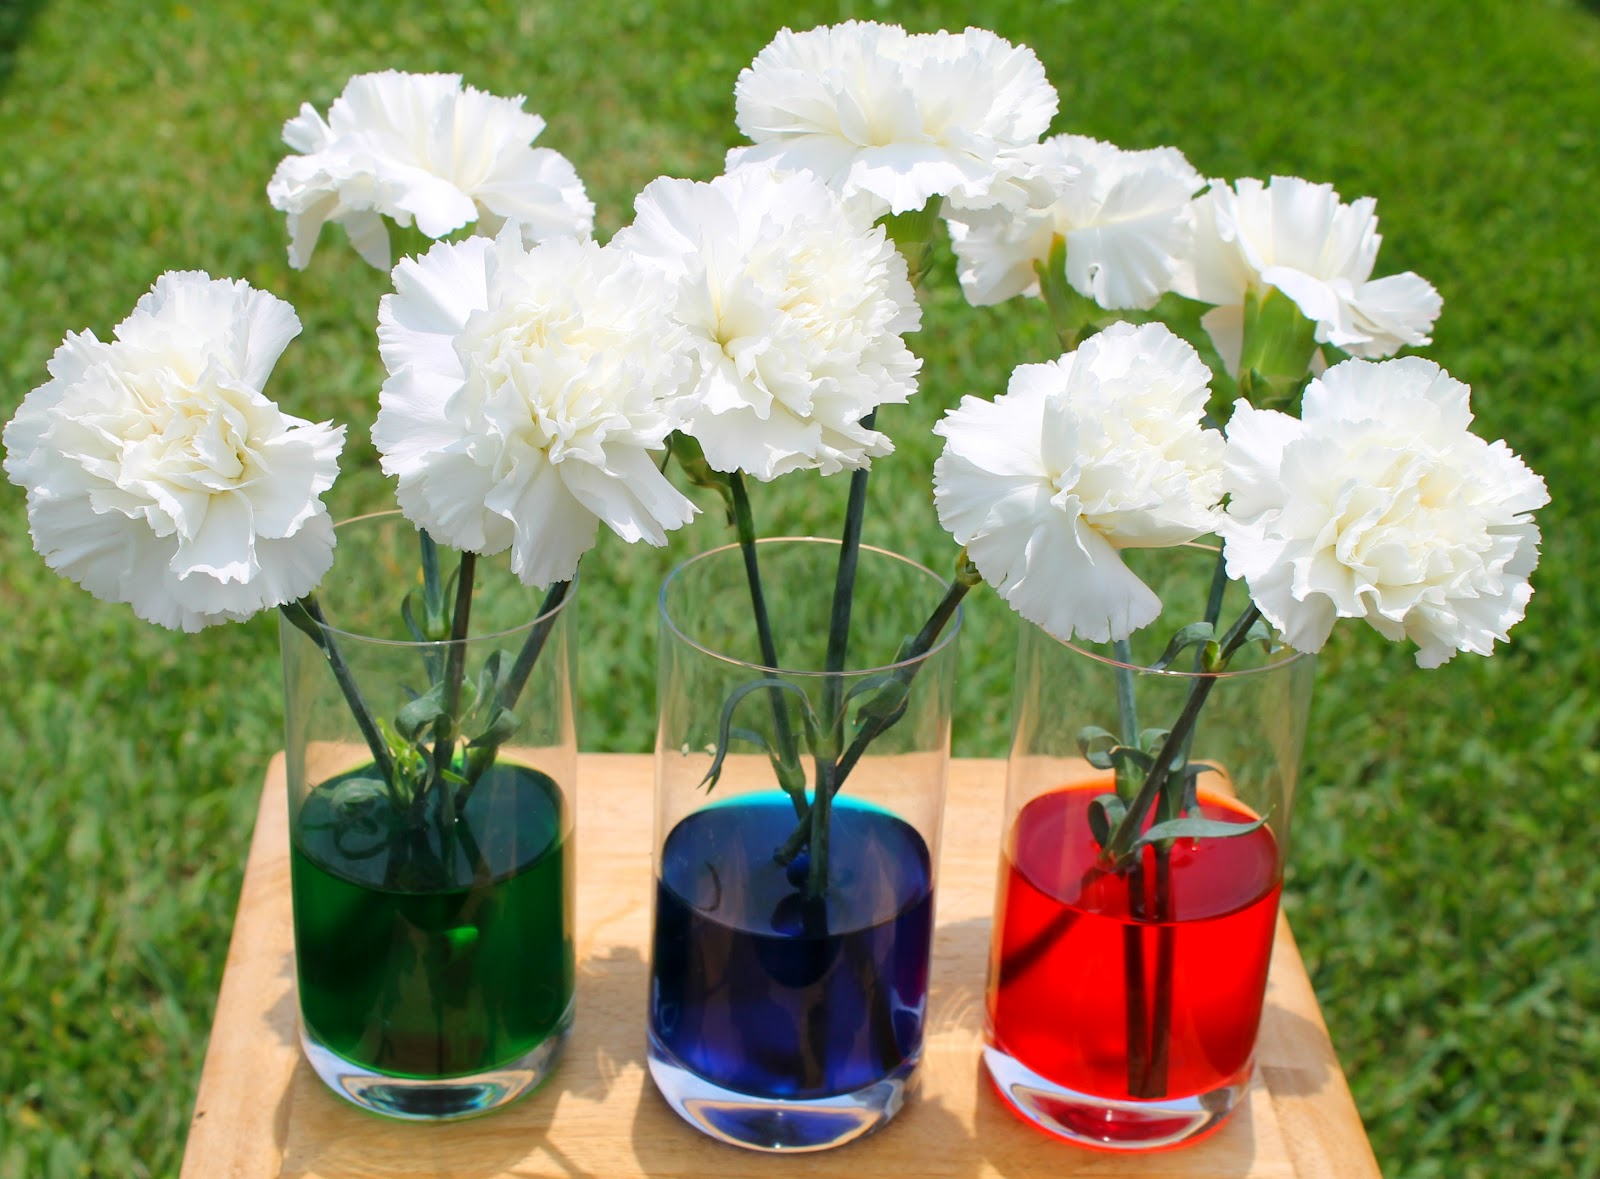 colored carnation experiment - Carnation Flower Colors